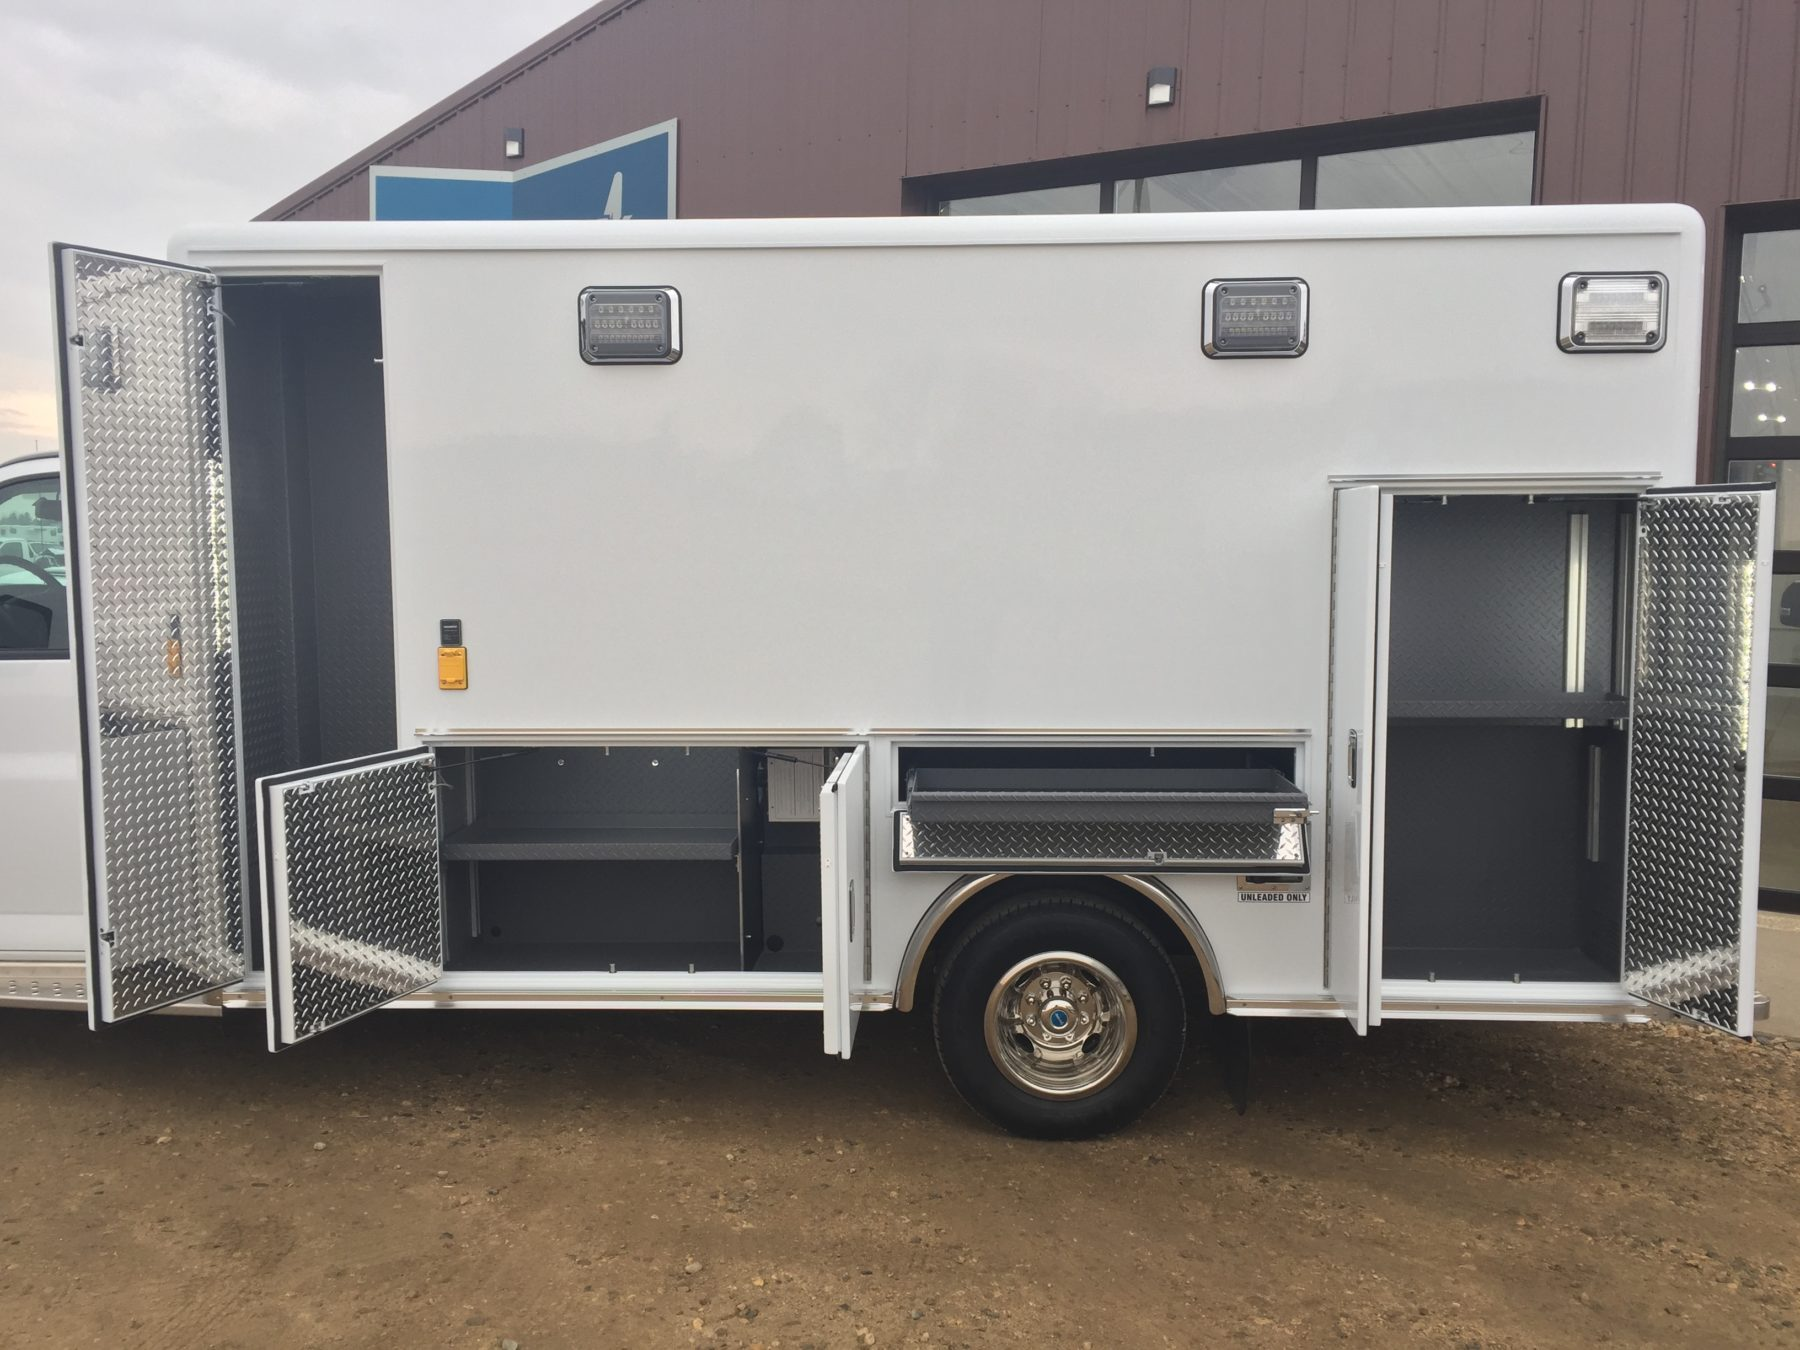 2019 Chevrolet G4500 Type 3 Ambulance For Sale – Picture 6